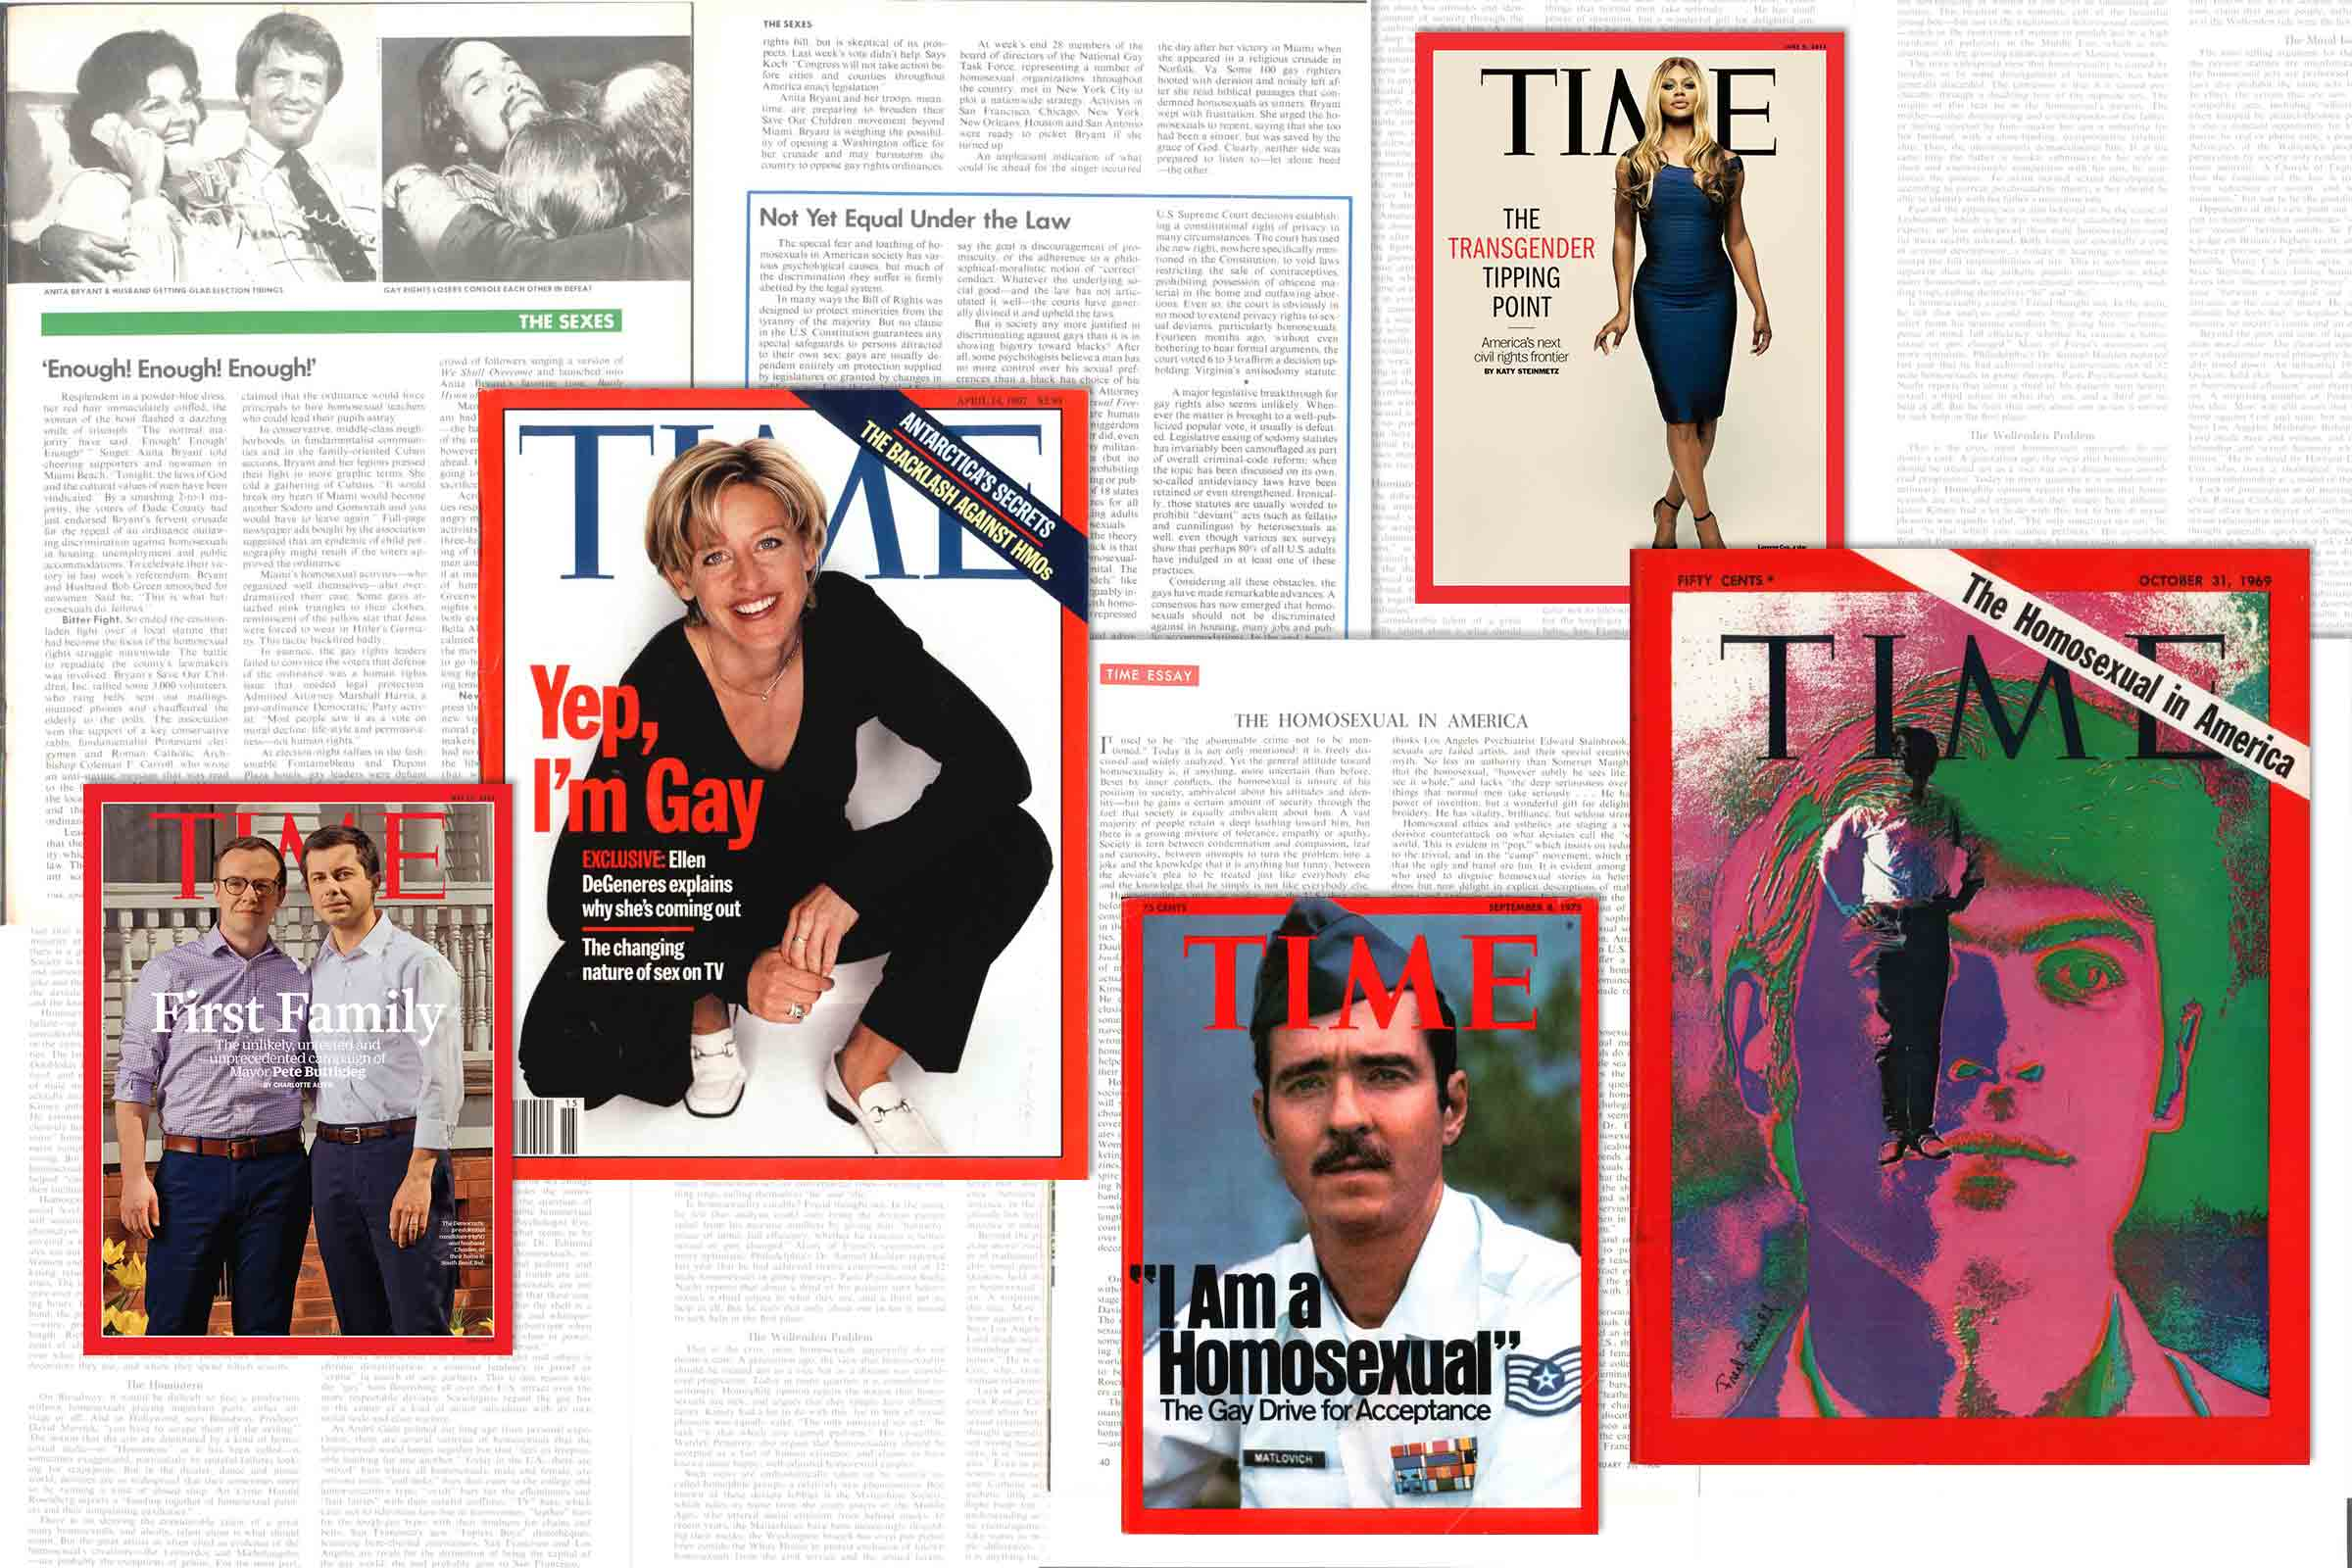 LGBTQ issues on the cover of TIME in (L-R) 2019, 1997, 1975, 2014 and 1969